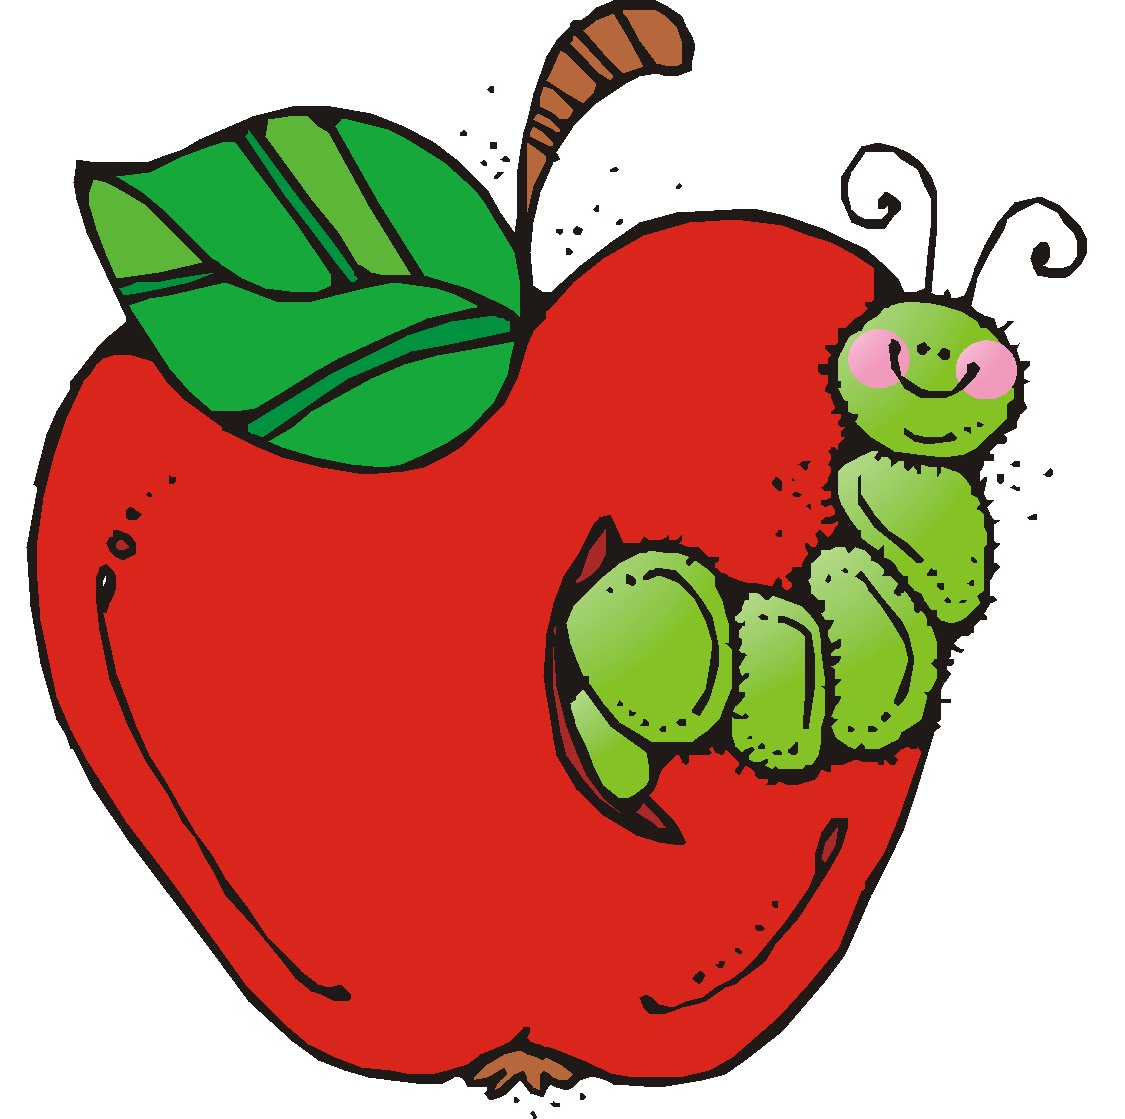 School Apple Clip Art   Clipart Best